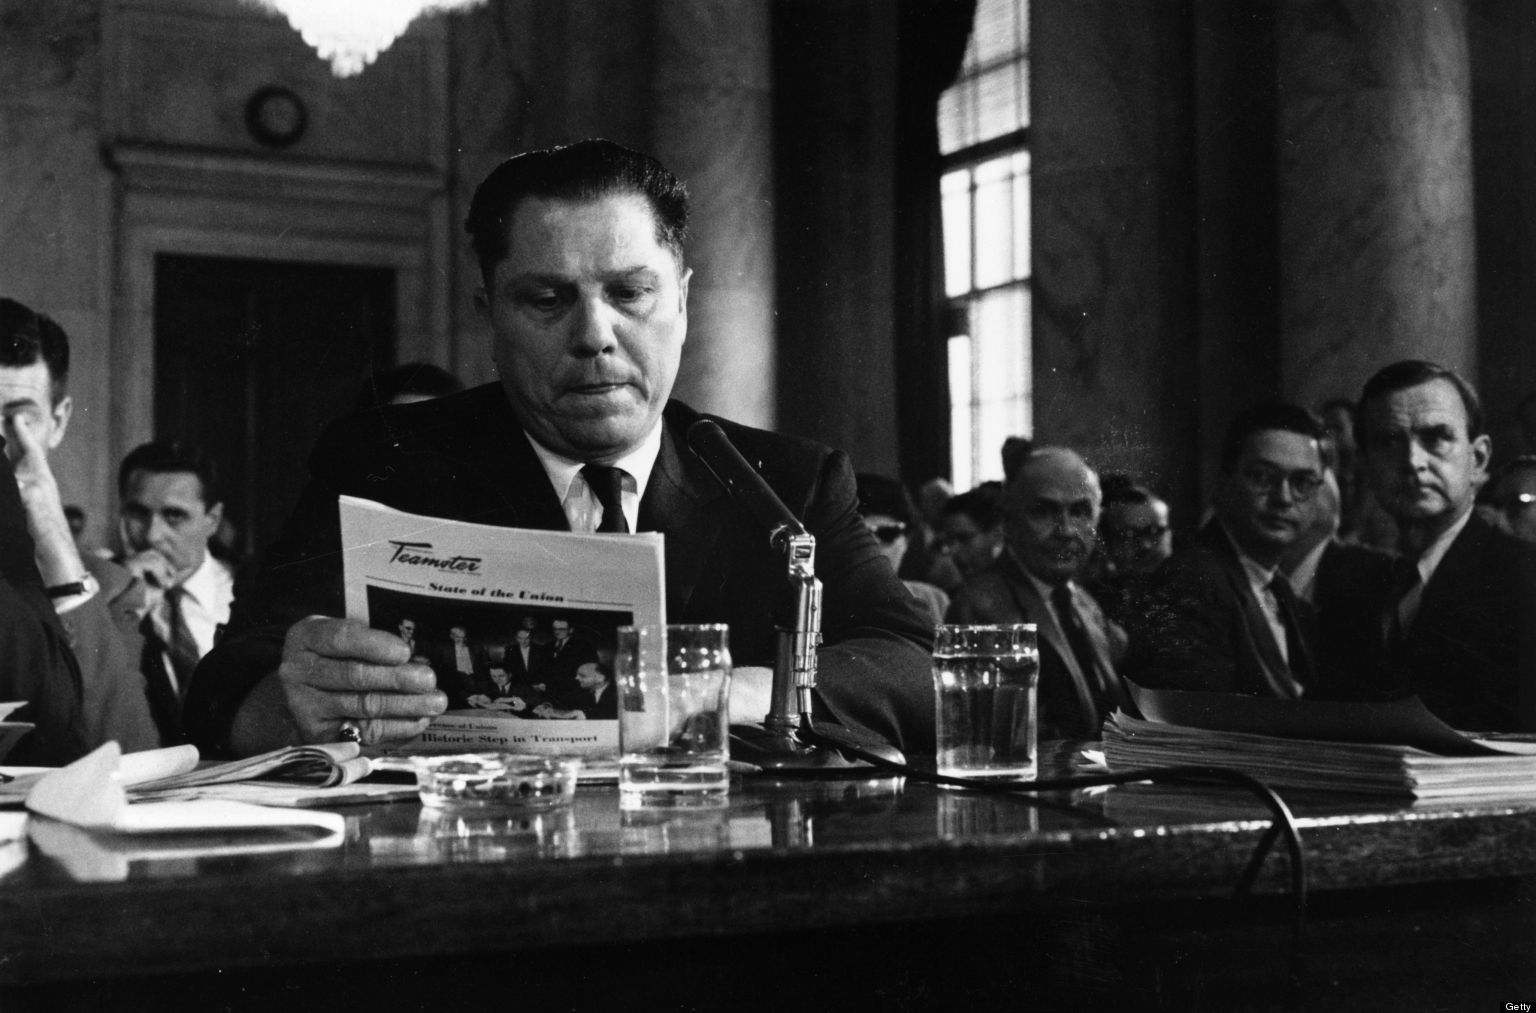 jimmy hoffa and the teamsters Hoffa is a 1992 american biographical crime film directed by danny devito and written by david mamet, based on the life of teamsters leader jimmy hoffamost of the story is told in flashbacks before ending with hoffa's mysterious disappearance.